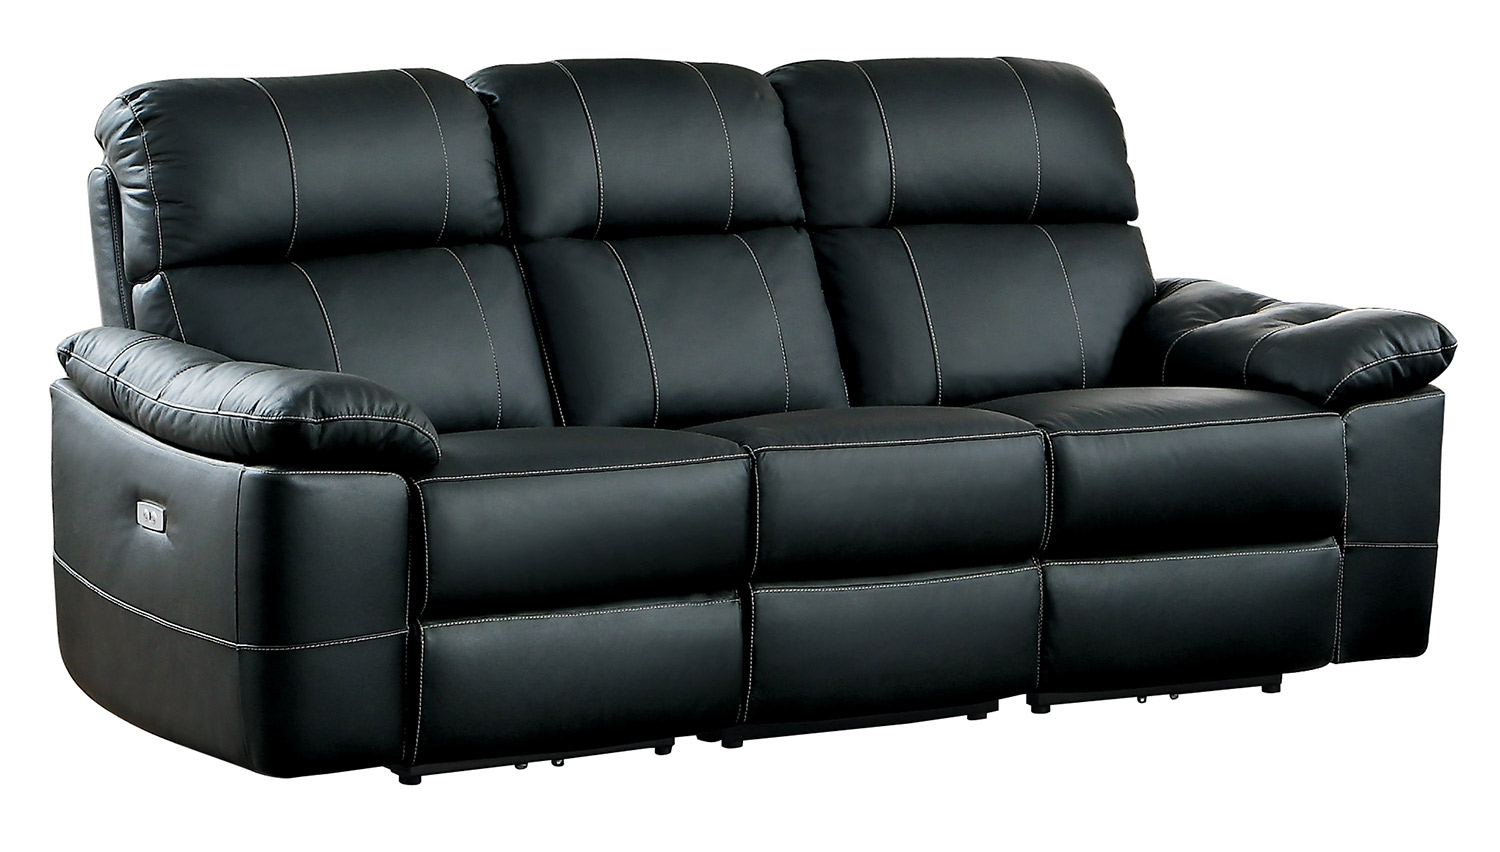 Homelegance nicasio power double reclining sofa black for Double leather sofa